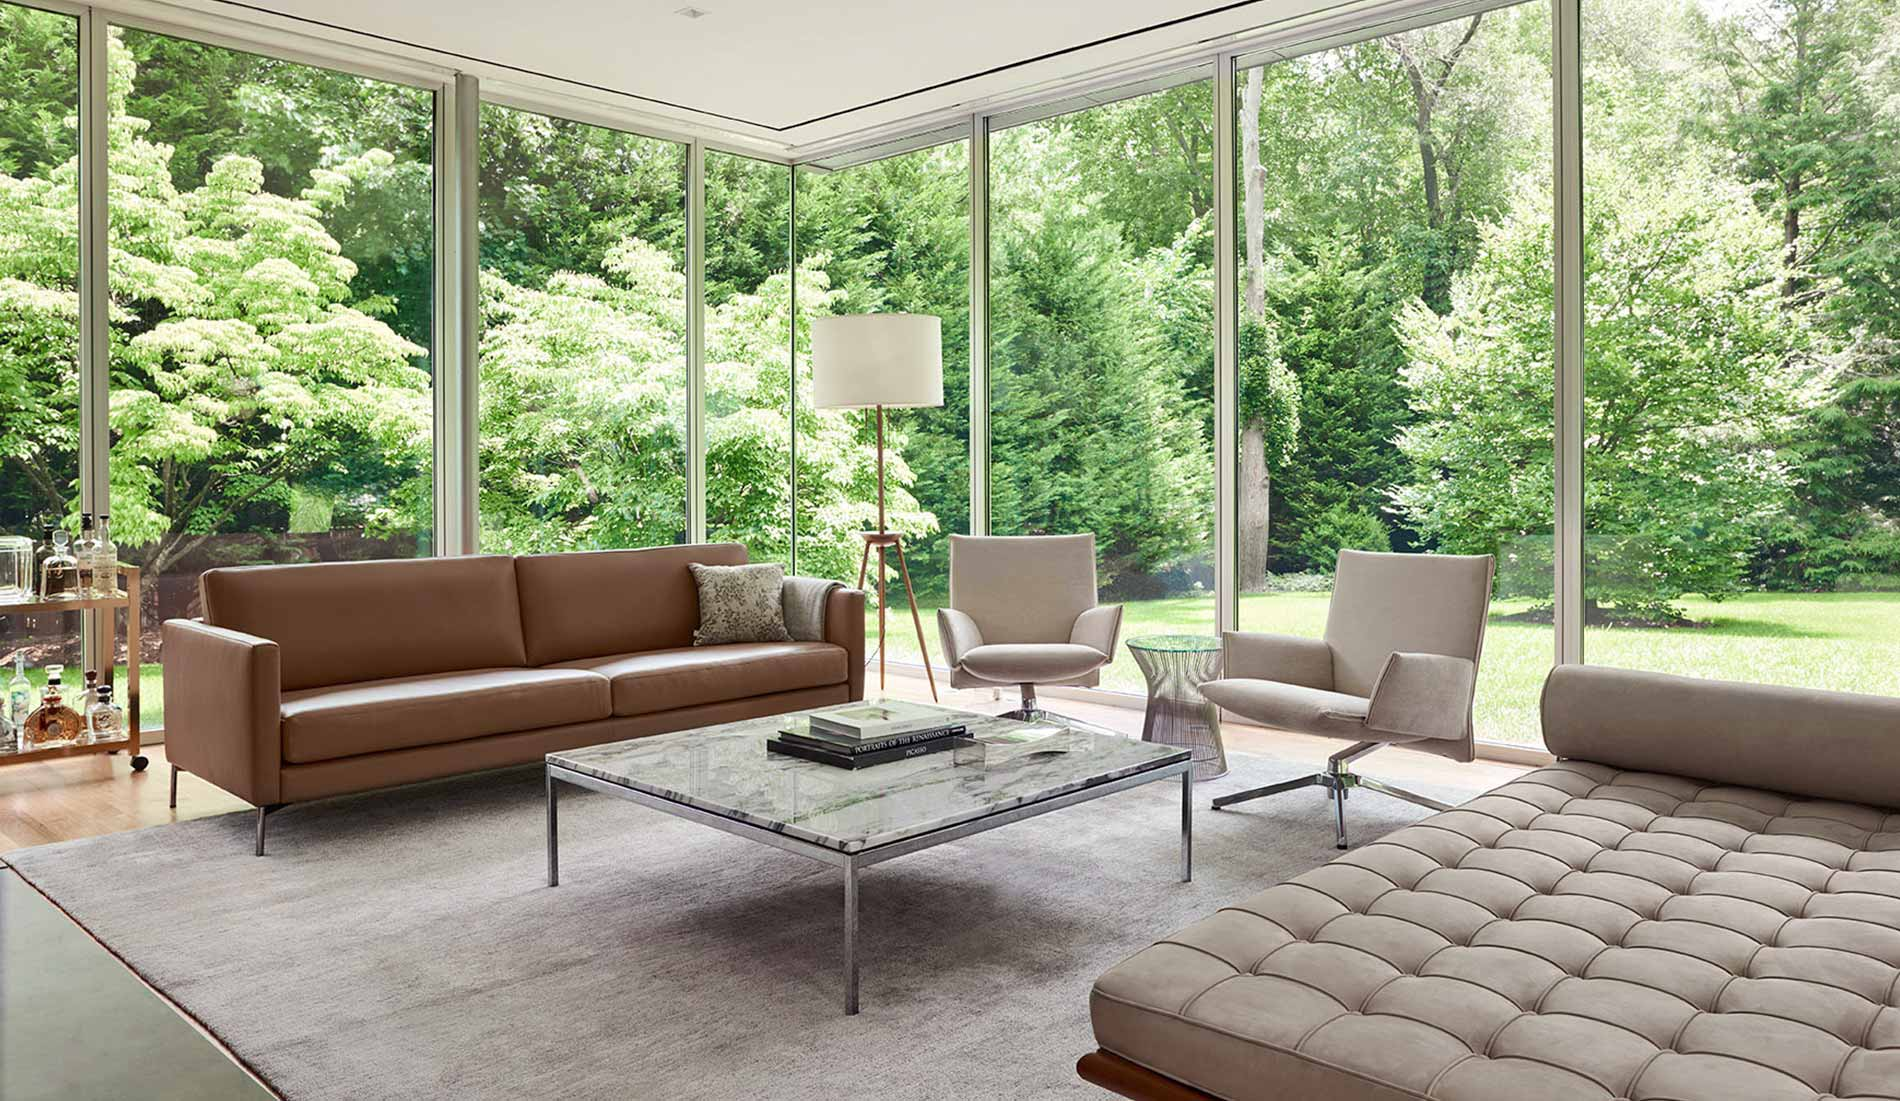 Knoll Living Room with Divina Sofa Pilot Chairs and Barcelona Couch